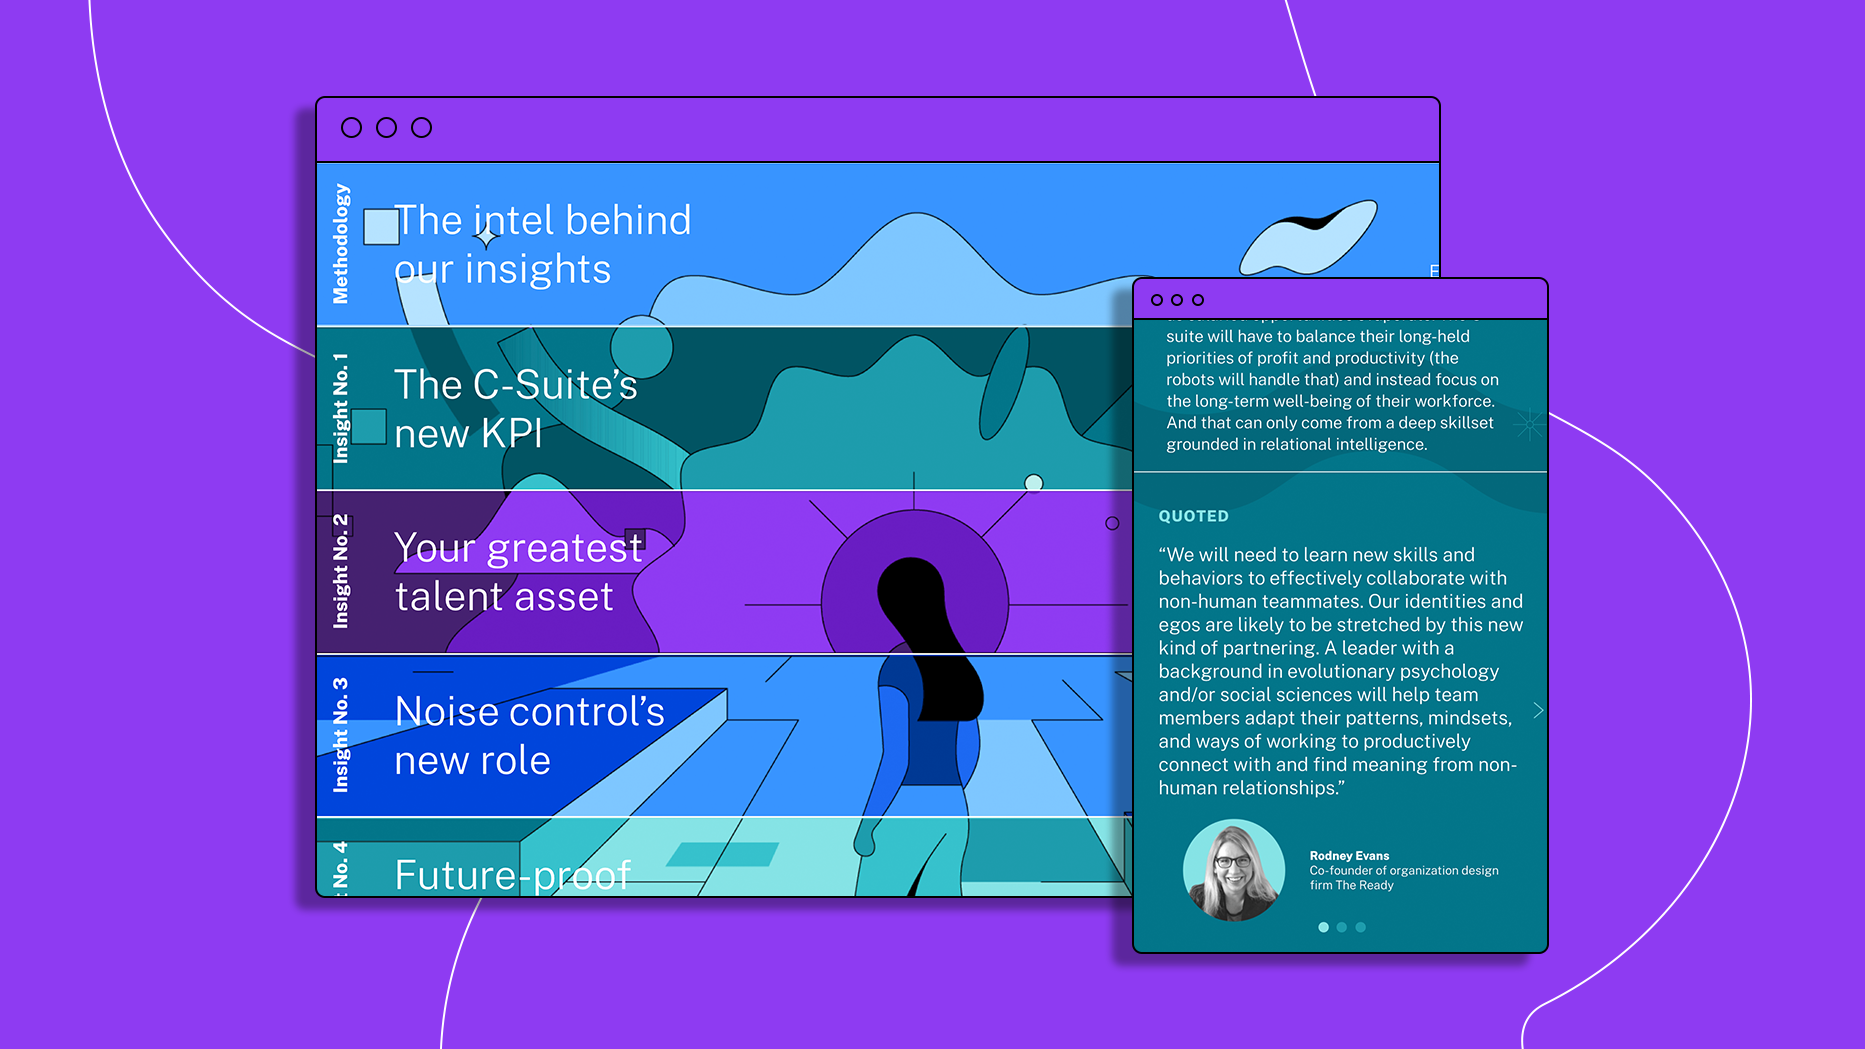 Screengrabs of desktop and mobile display of Citrix WX report against purple background